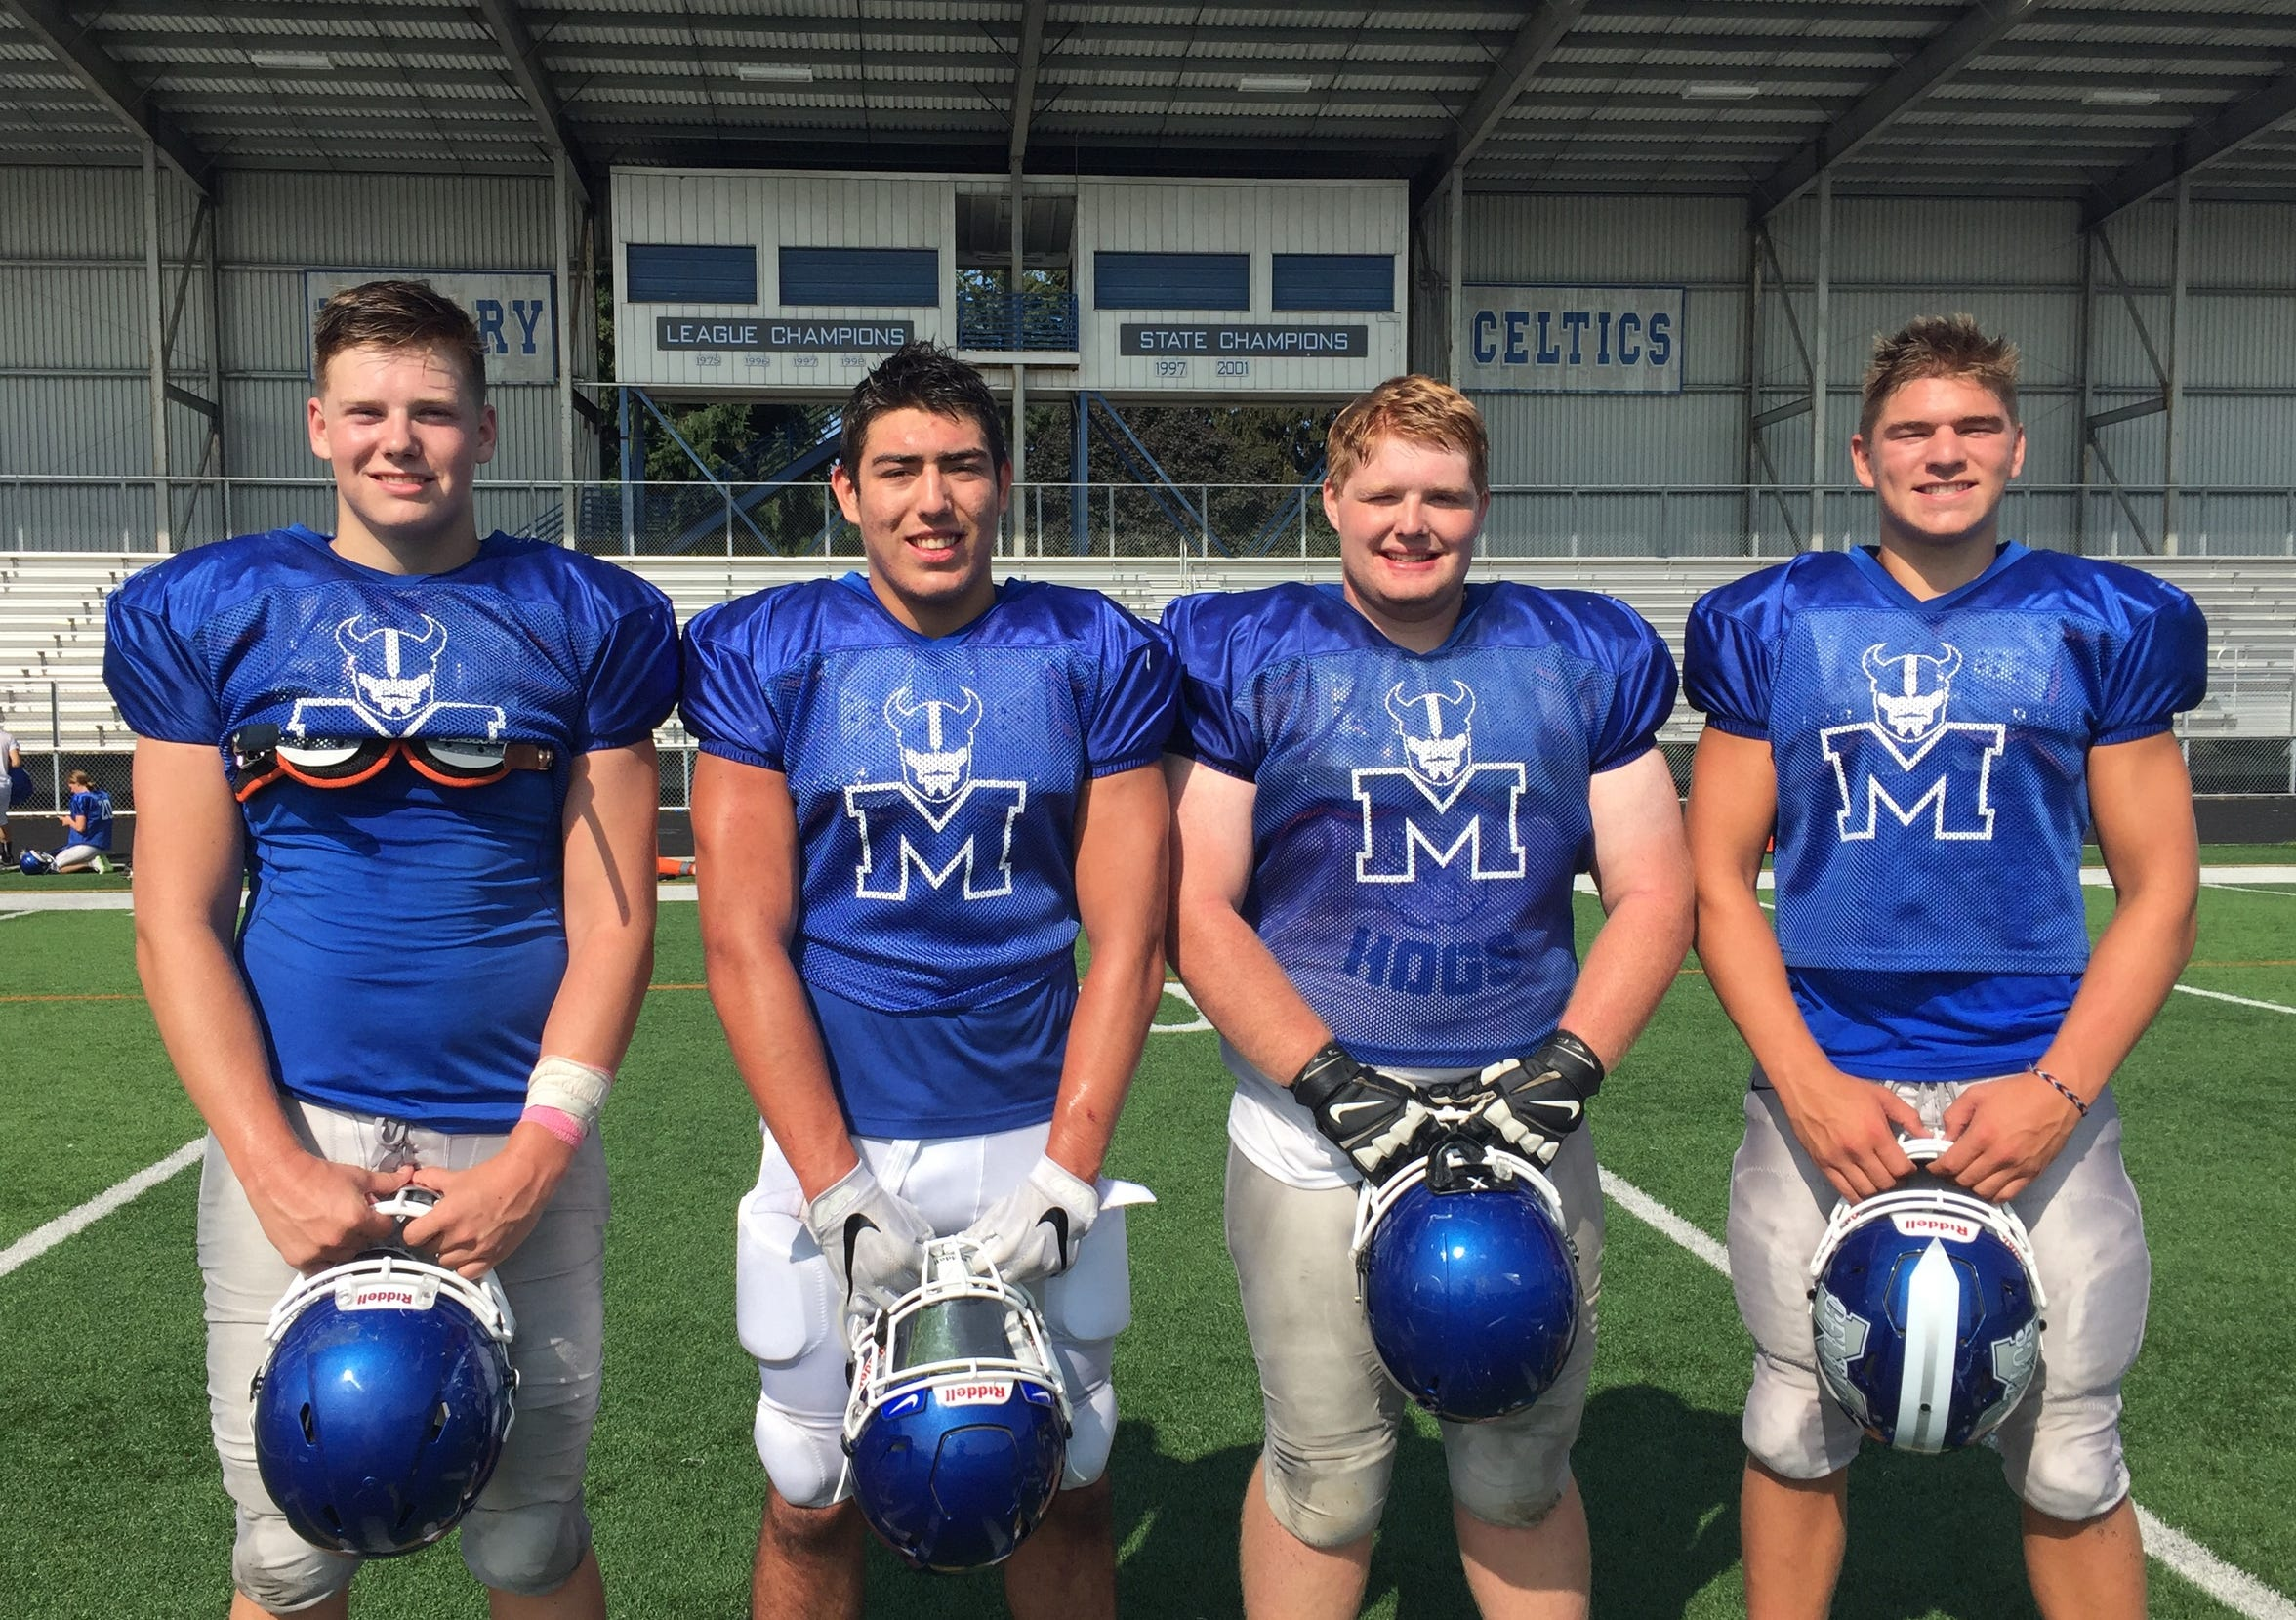 Key players for McNary include (from left) Wyatt Sherwood, Junior Walling, Josh Schmeltzer and Erik Barker.